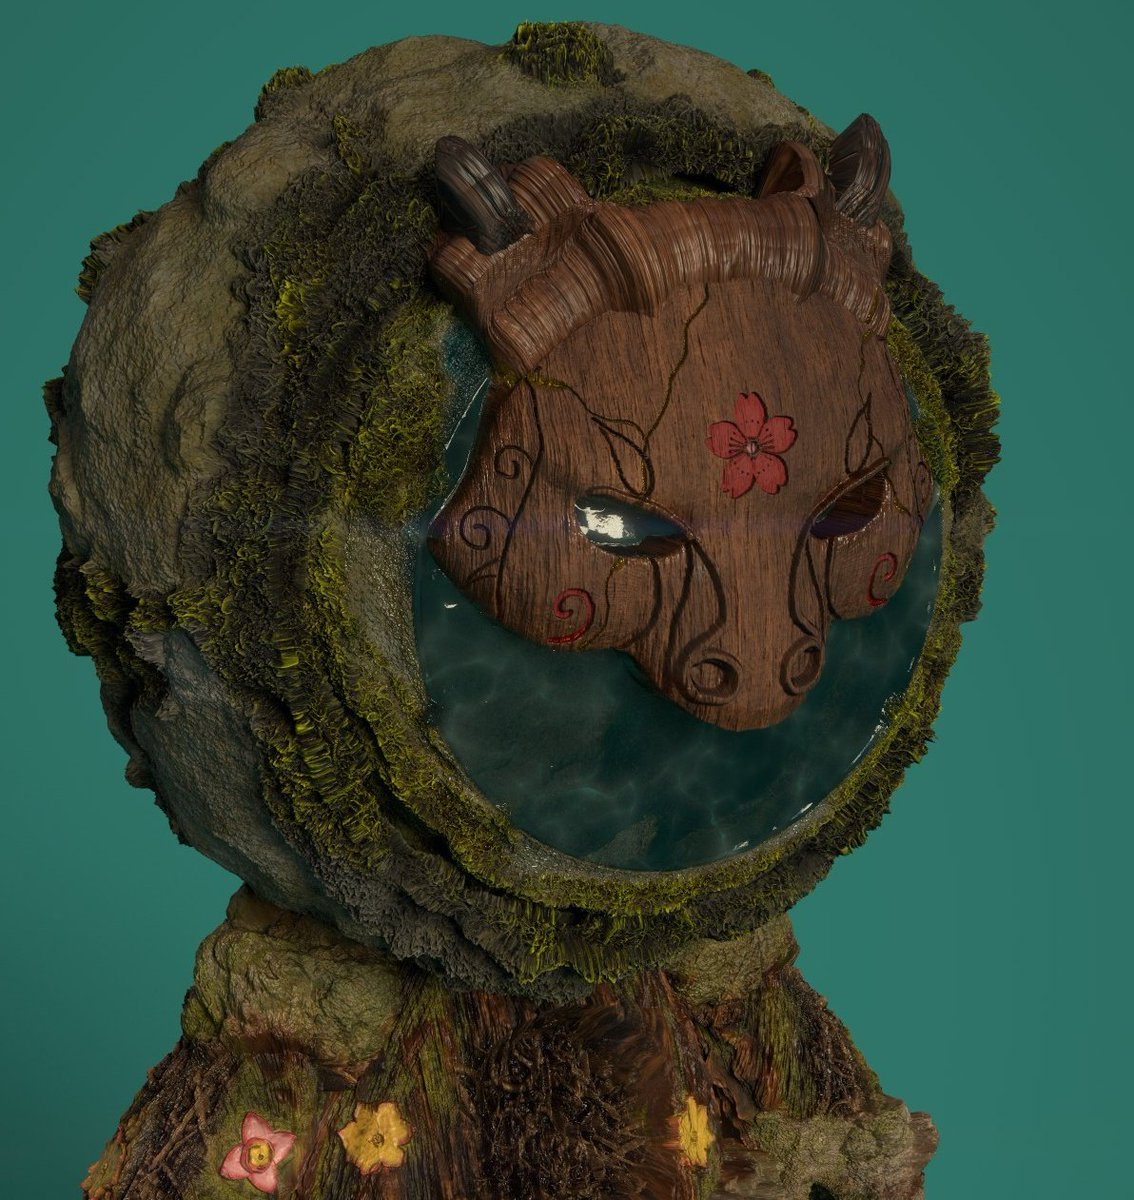 Small close up! I still need to work a bit more on the wood. But is time to add the final details to Mr Guardian #MeetMAT2 #games #substancepainter #shading #gameart #texturing #spirit #forest #guardianoftheforestpic.twitter.com/sfuULr0xys